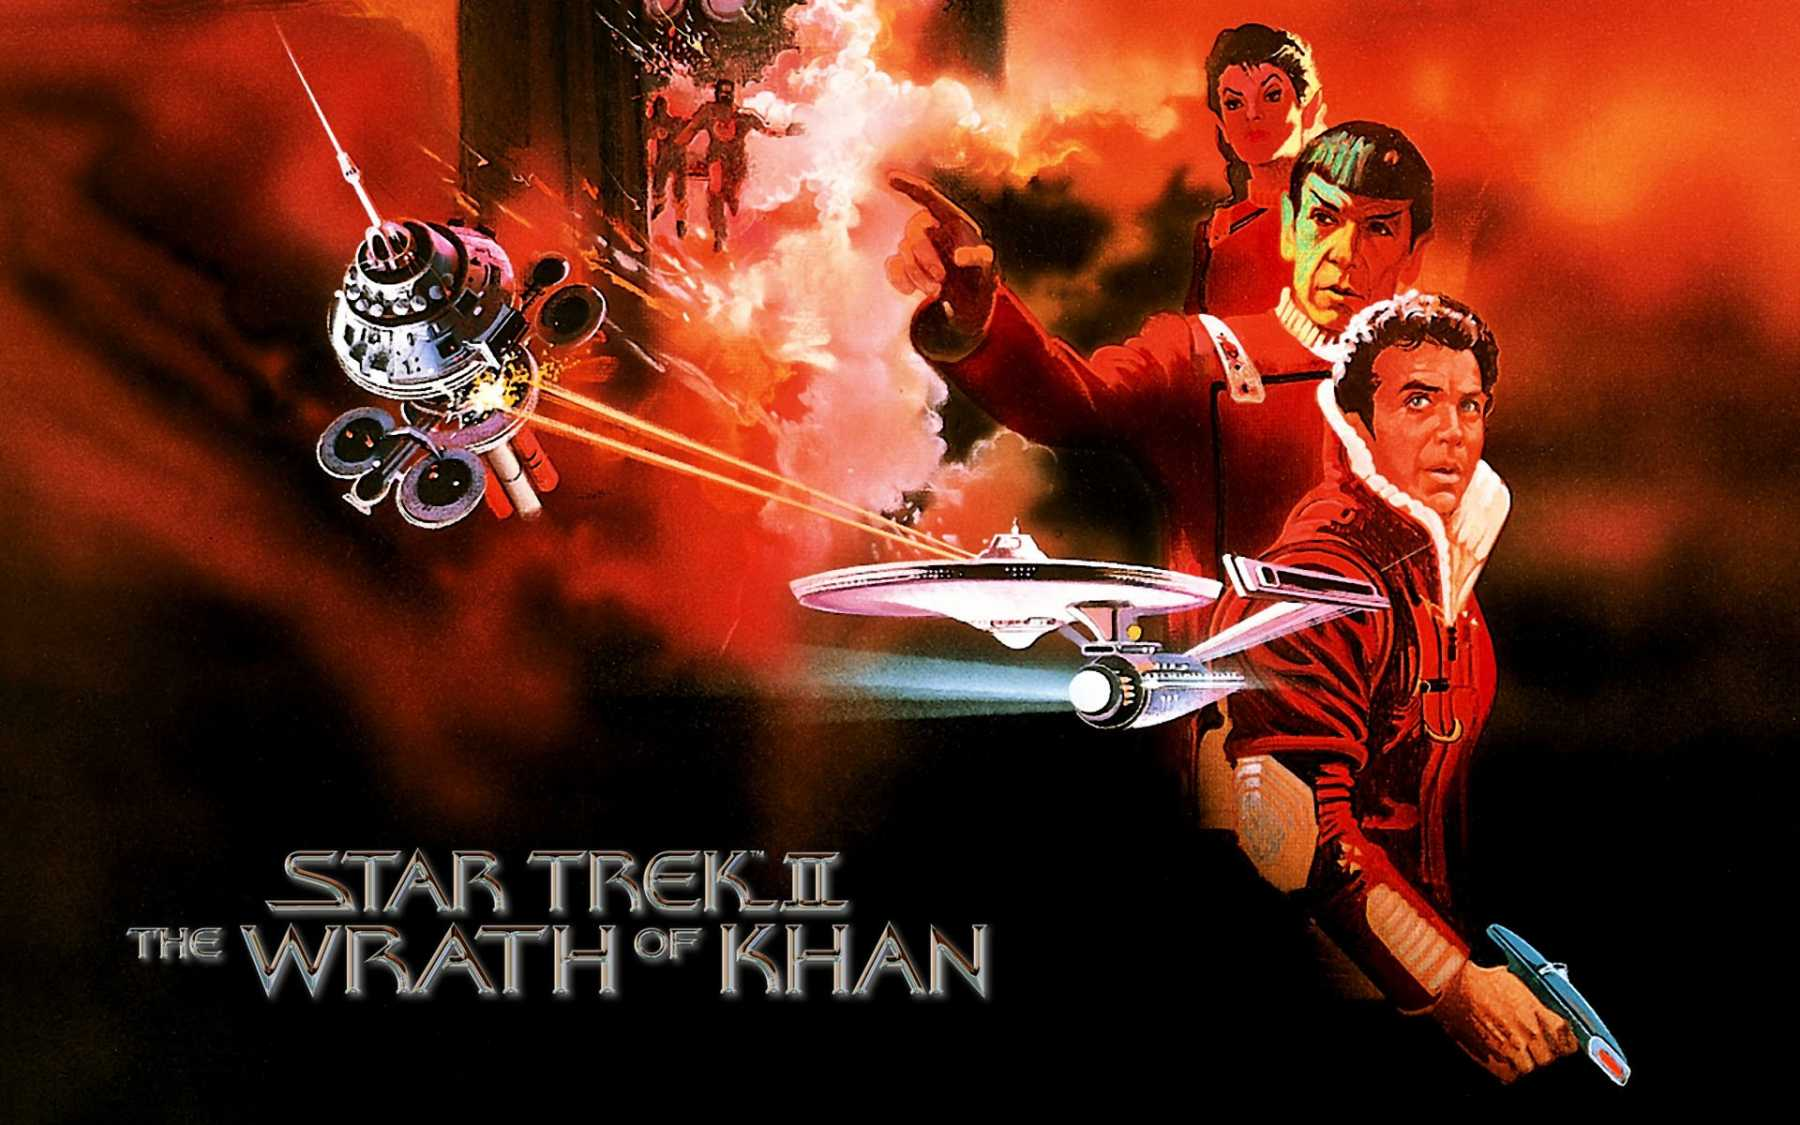 'Star Trek II: The Wrath Of Khan' Director's Cut Returning To Theaters For 35th Anniversary | The Wrath Of Khan